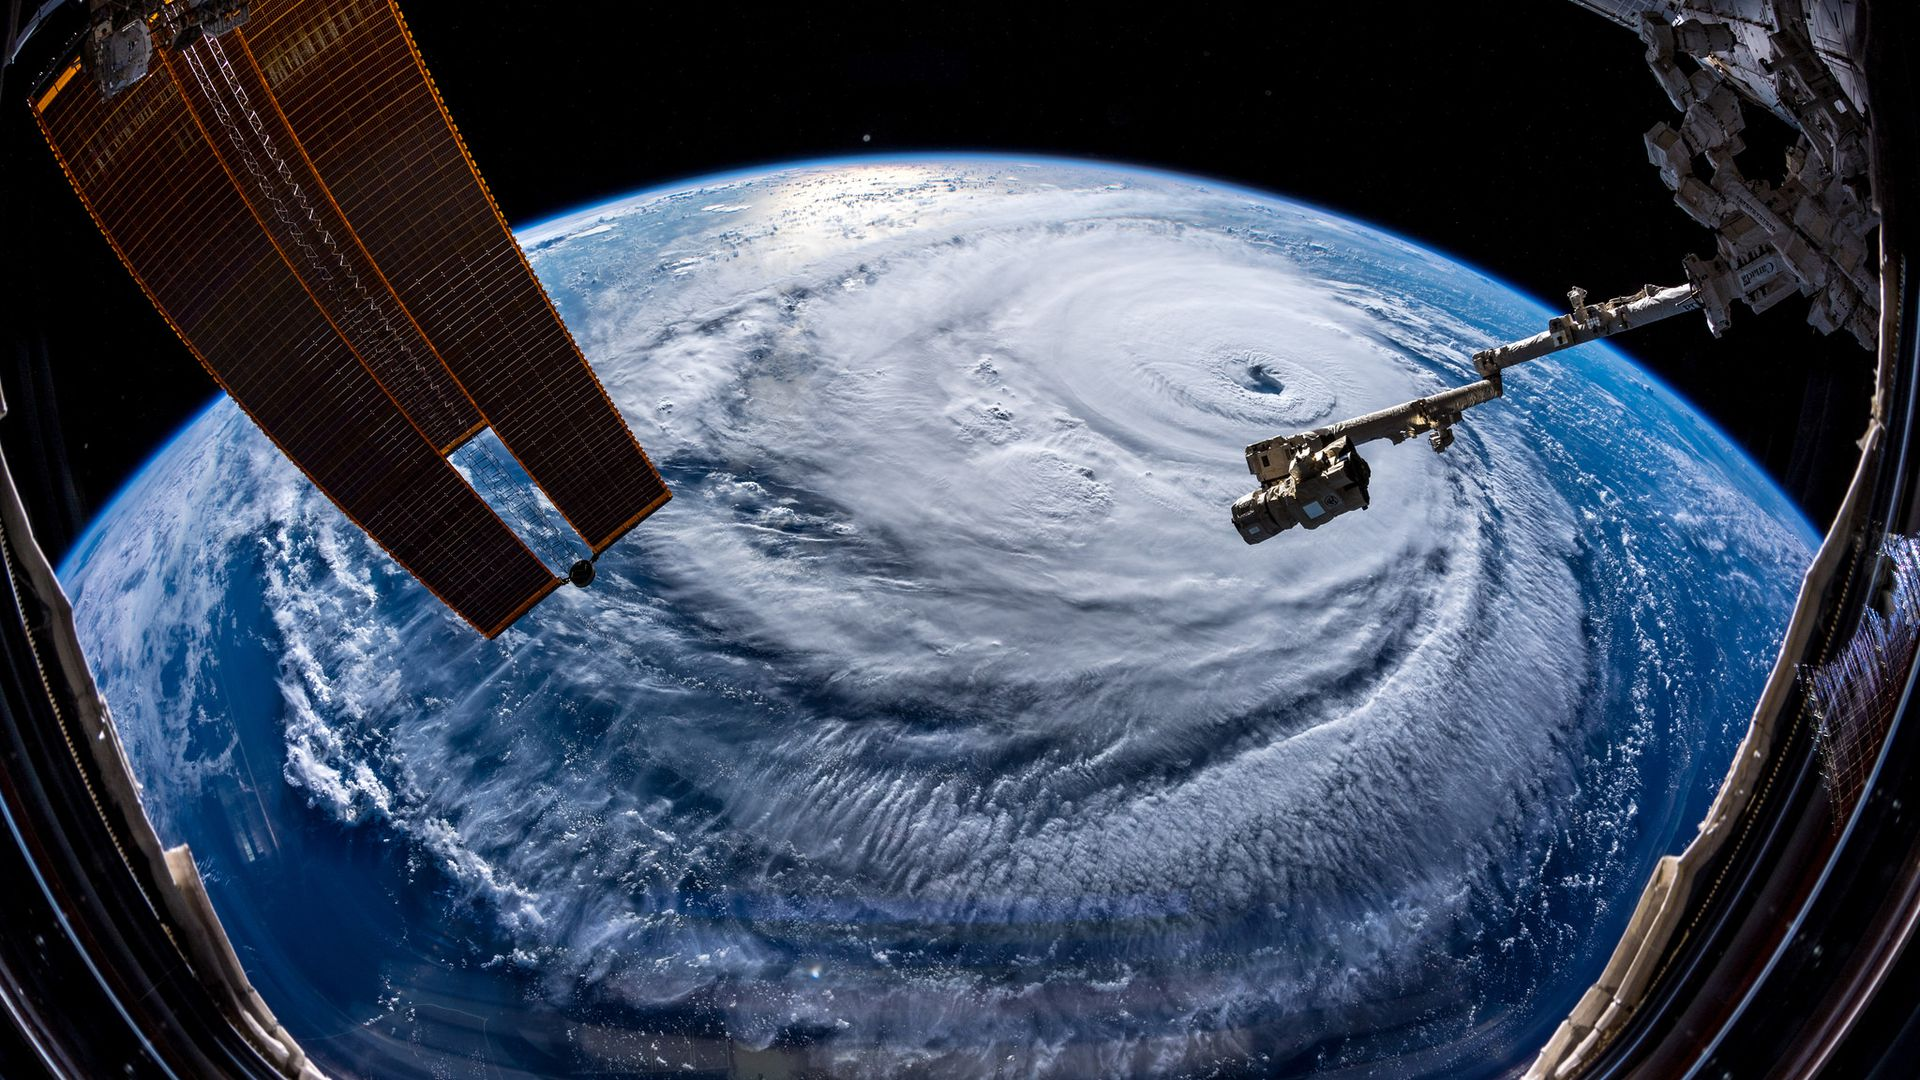 Hurricane Florence Astronaut captures incredible images of the 1920x1080